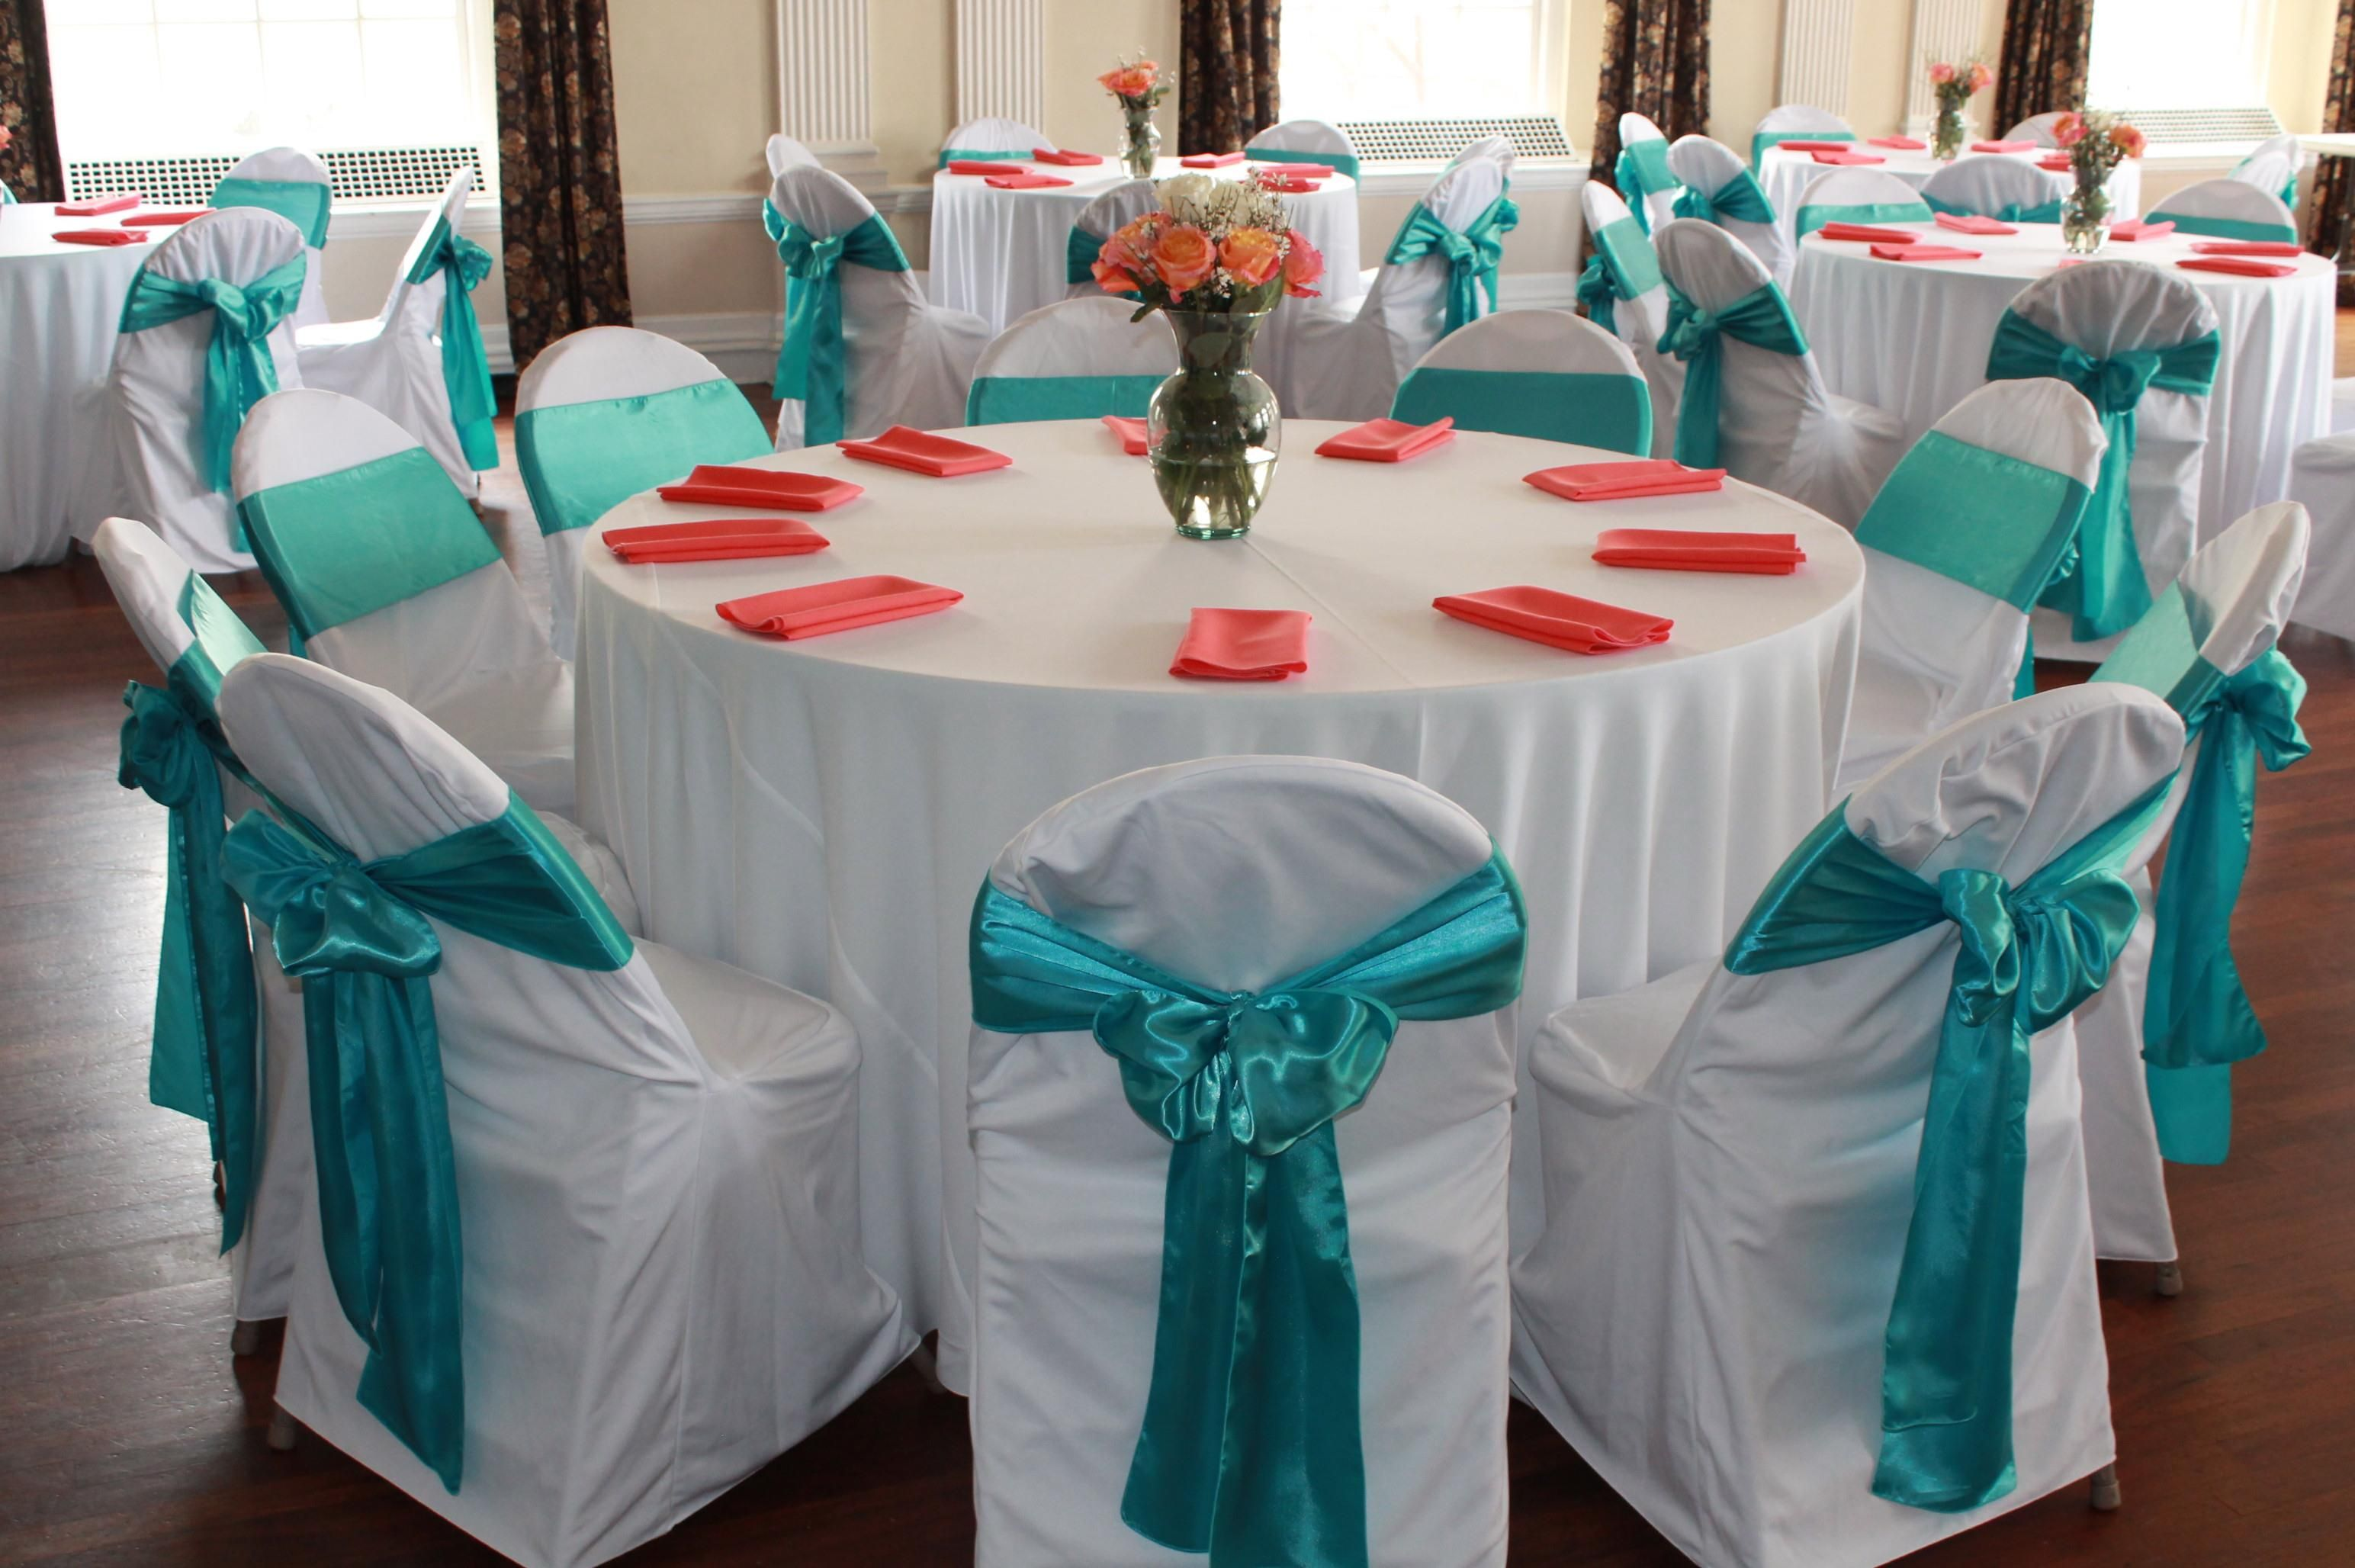 White polyester tablecloths and chair covers, coral